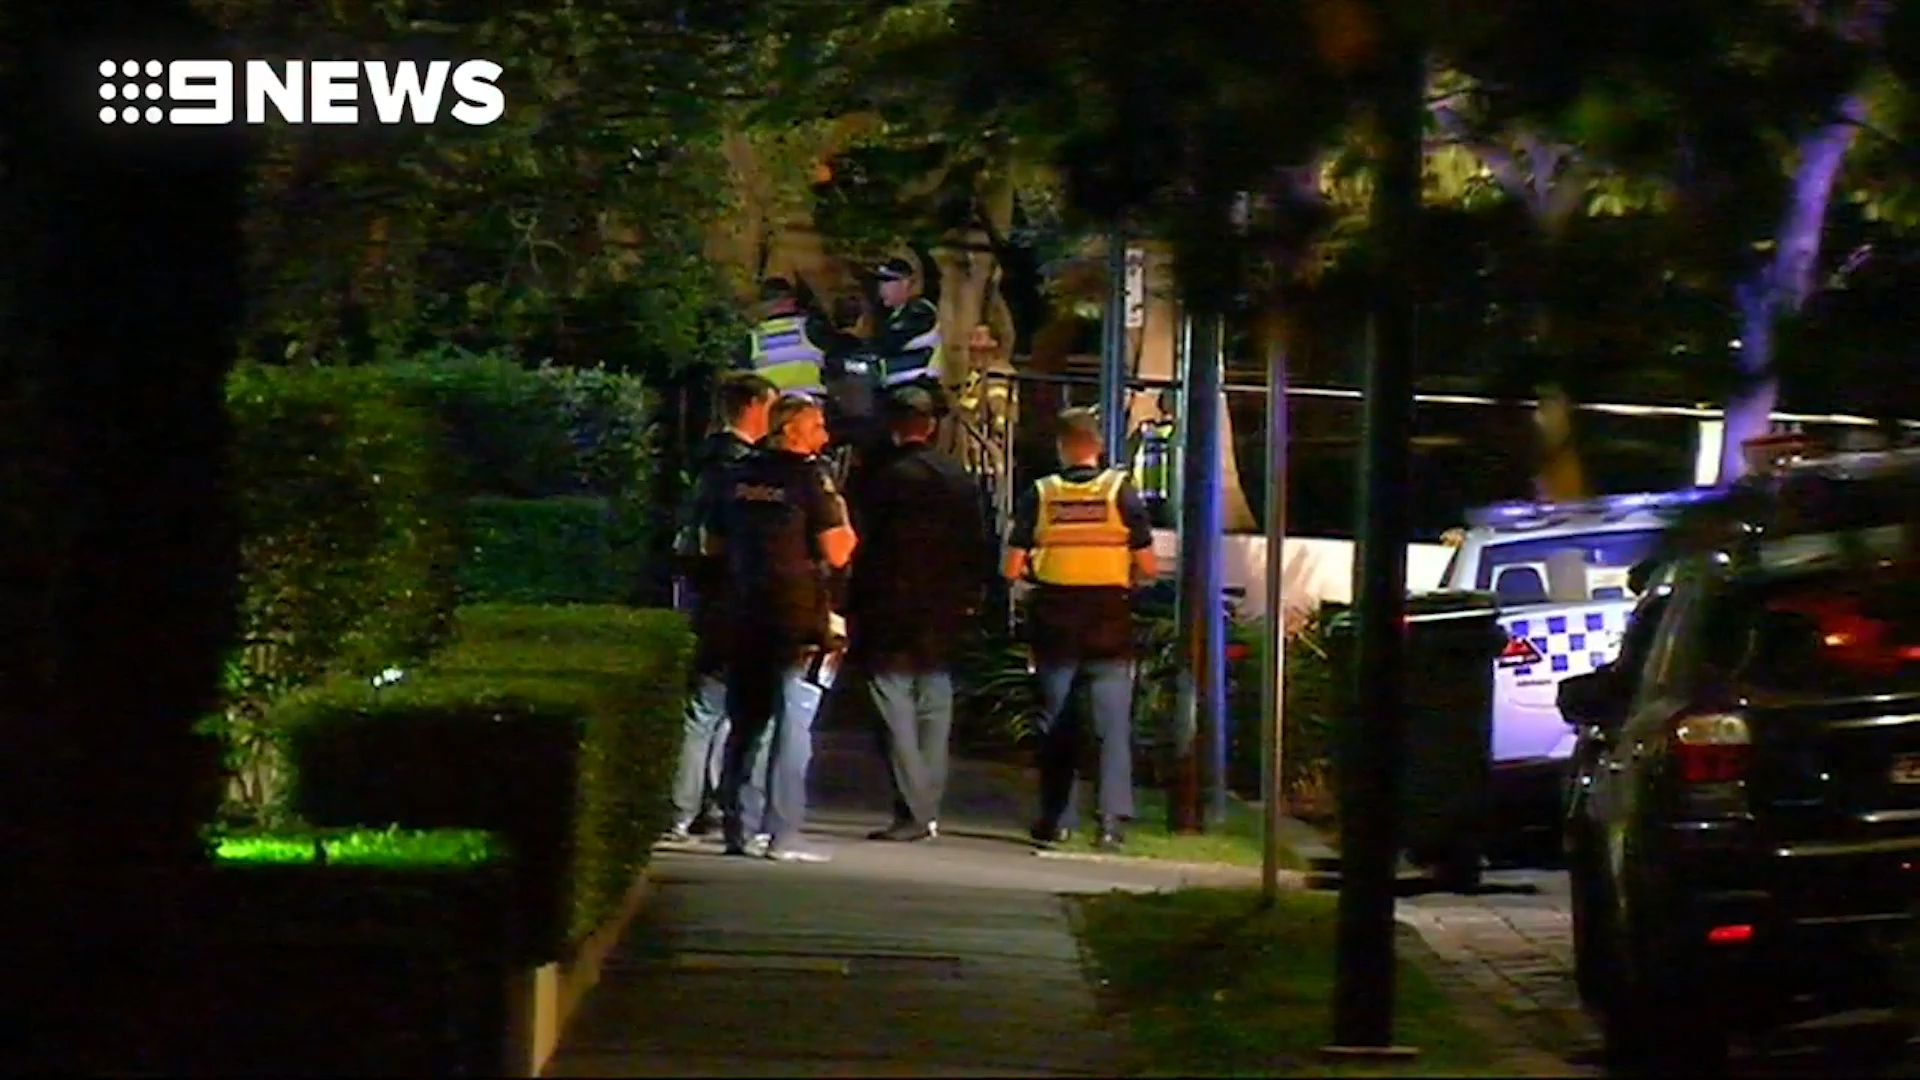 News Victoria: Police hunting suspected killer of crime